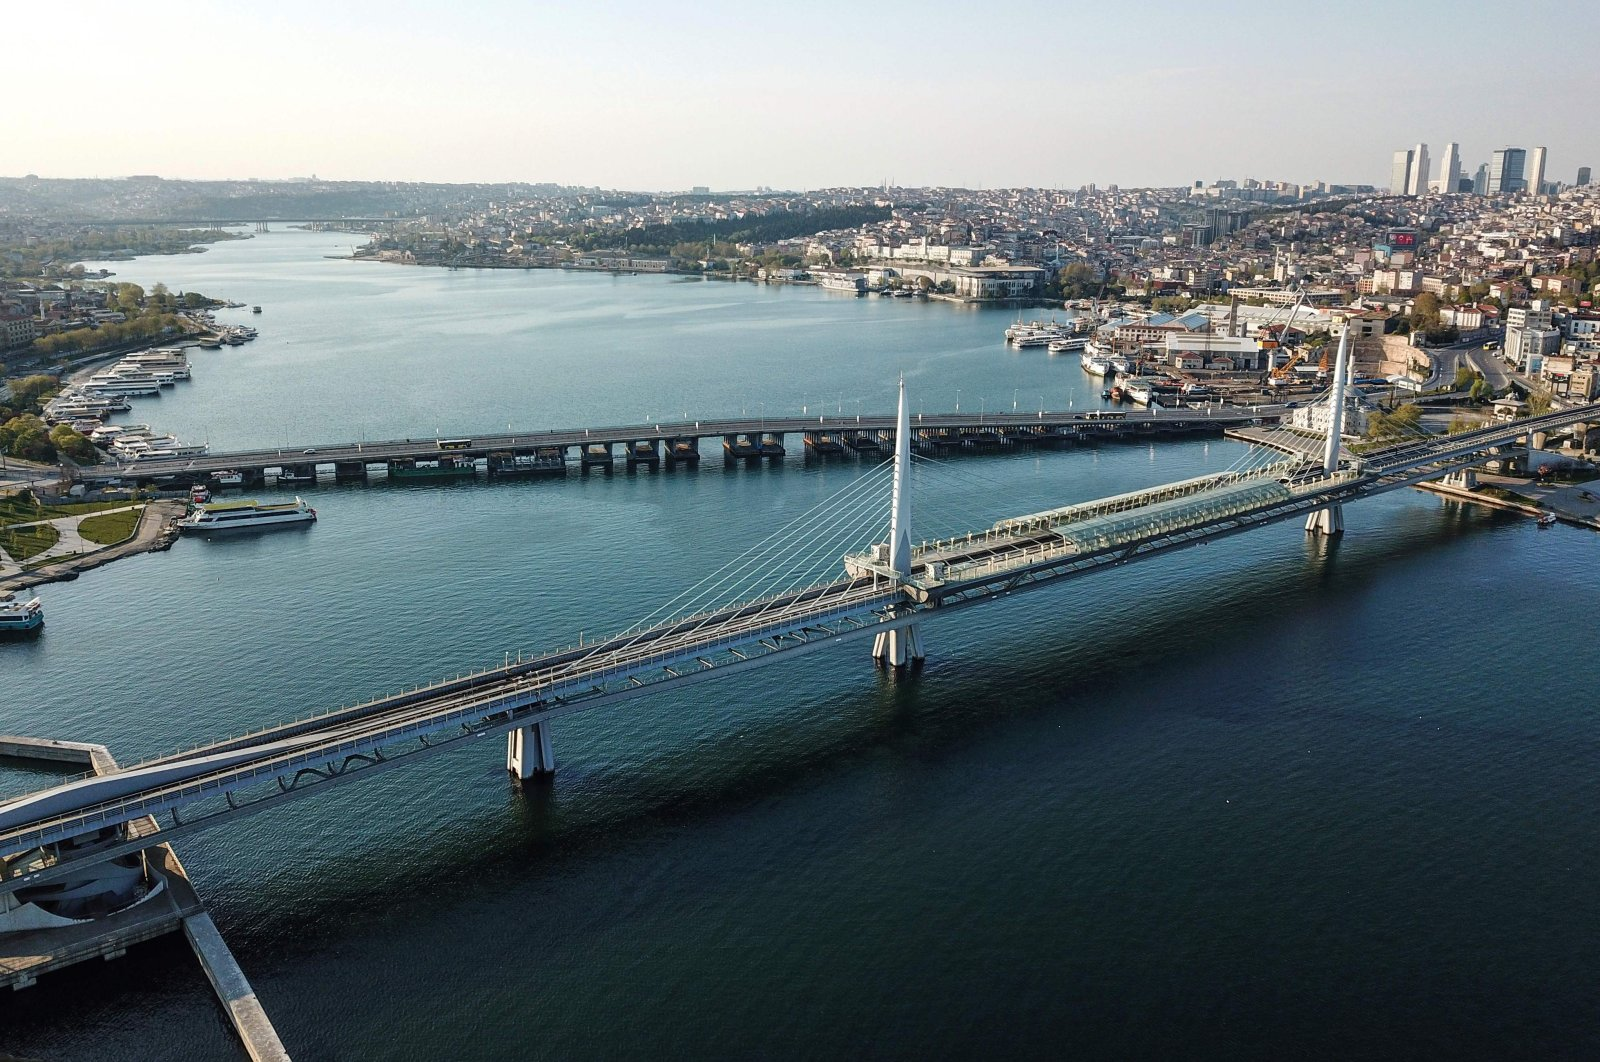 The Unkapanı Bridge (back) and Metro Bridge (front) across the Golden Horn, in Istanbul, Turkey, during a four-day curfew to prevent the spread of the COVID-19 disease, April 26, 2020. (AFP Photo)